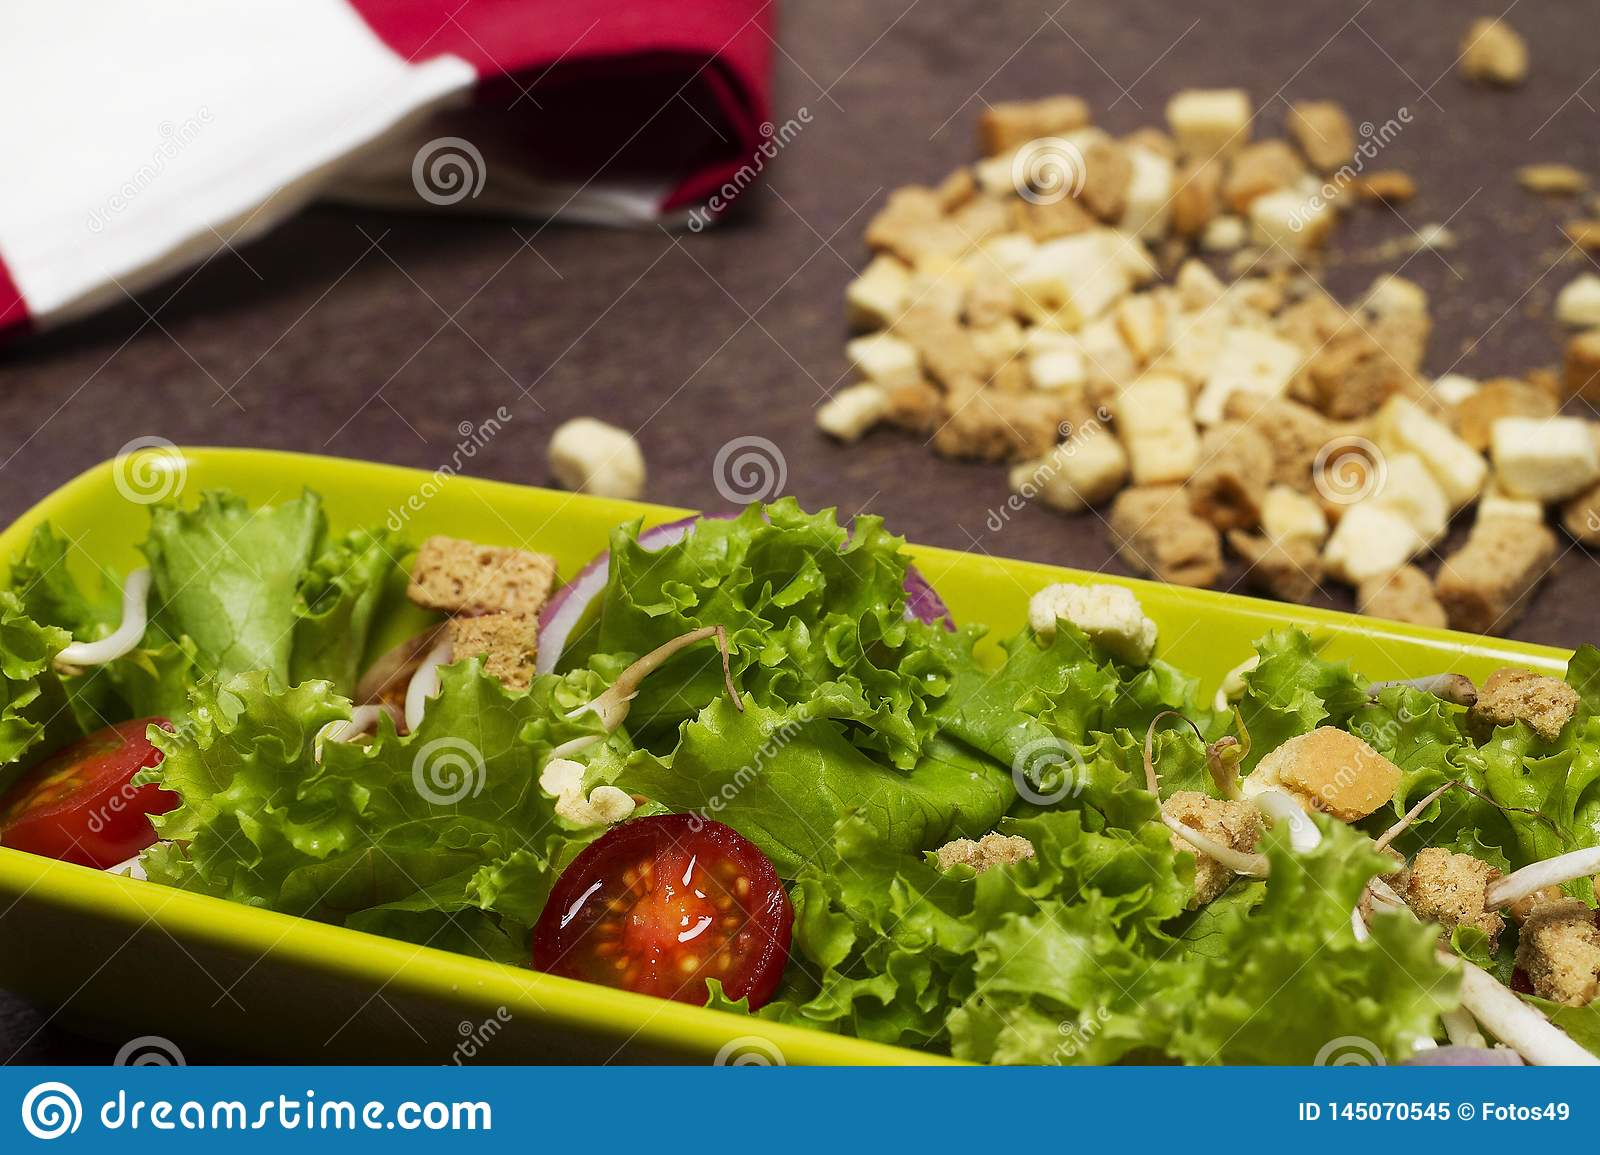 Fresh salad of tomato lettuce and onion with red striped cloth, bread laces and wooden spoon